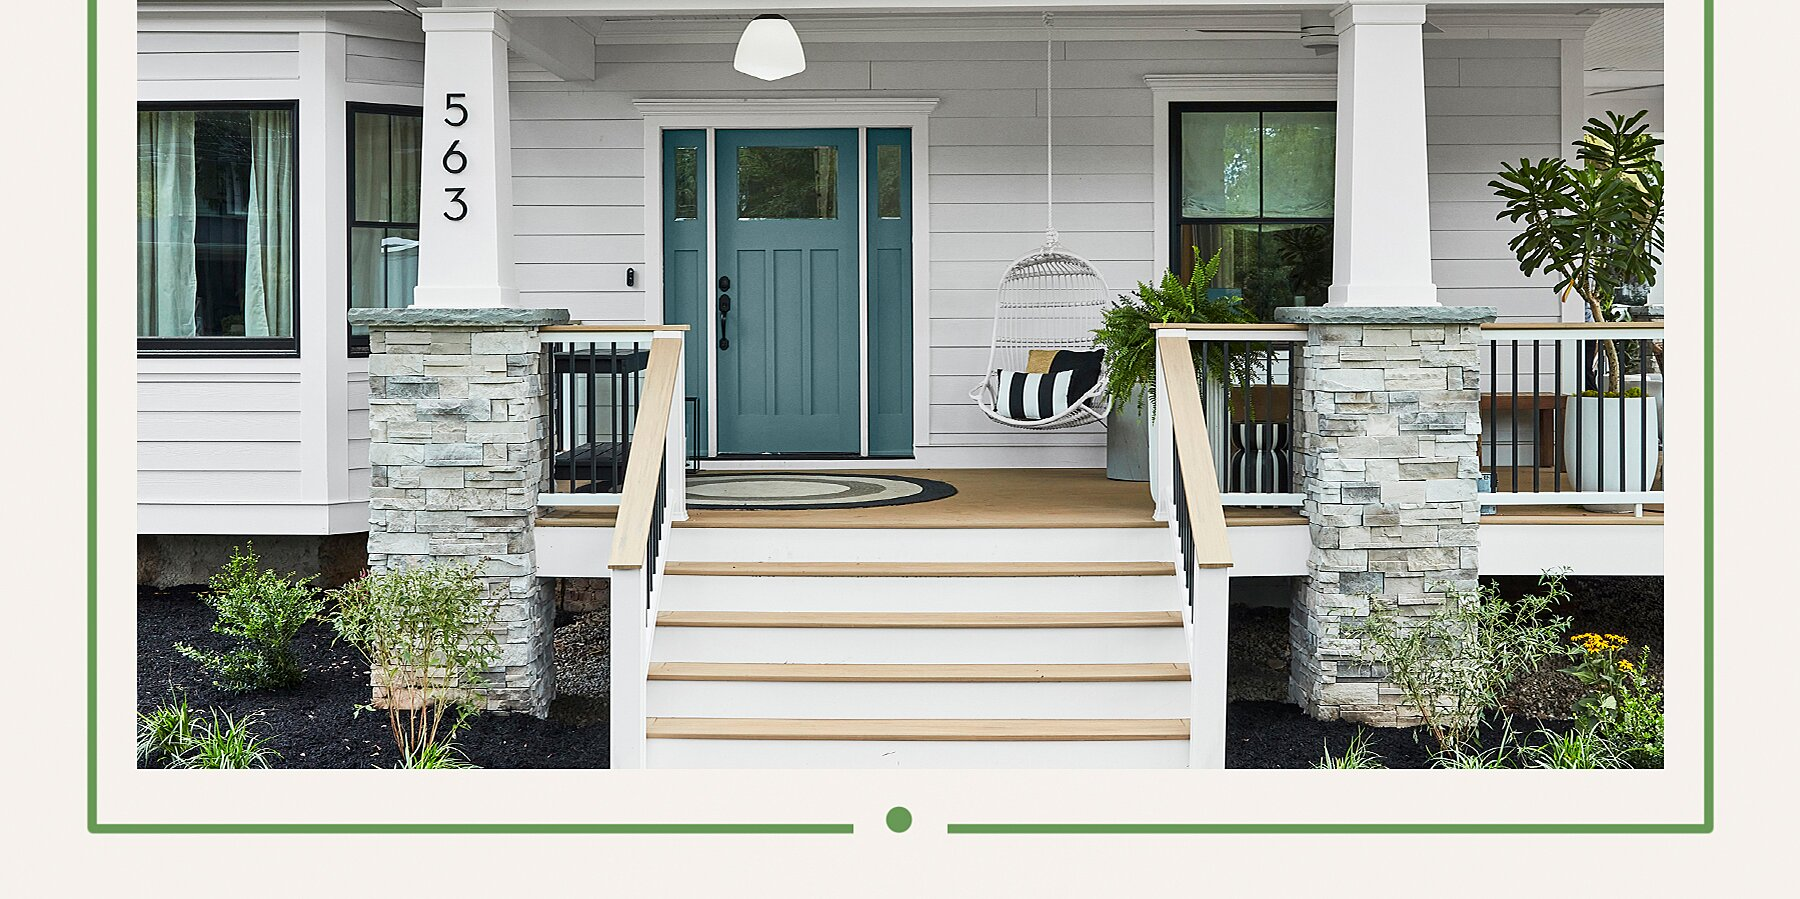 3 Low-Effort Ways to Boost Your Home's Curb Appeal